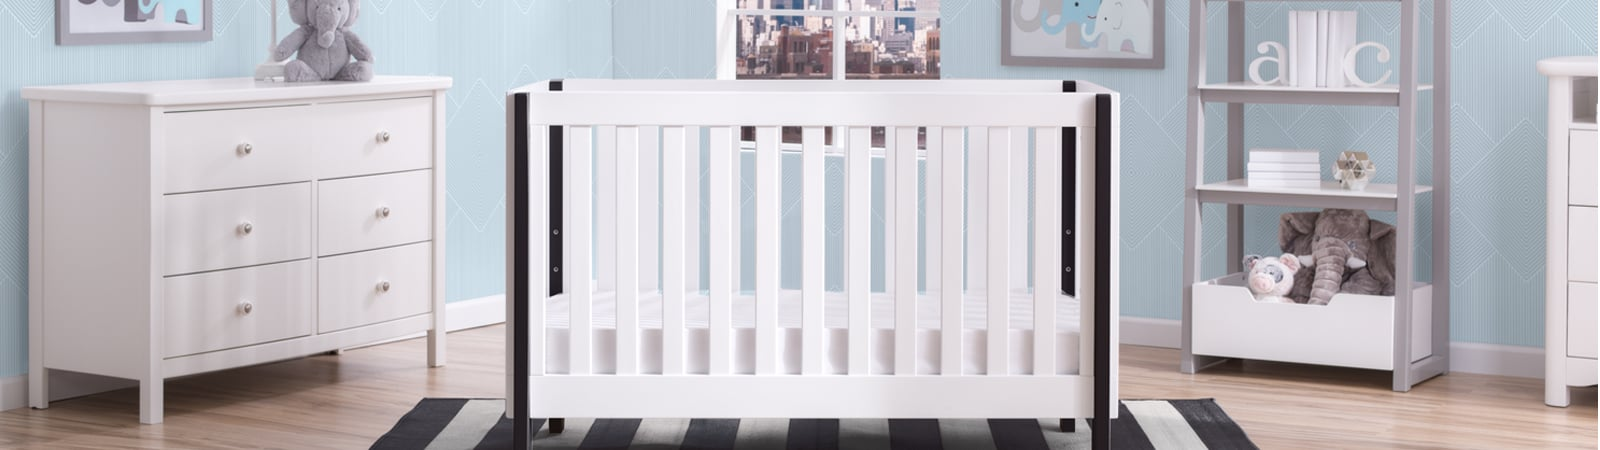 A Delta Childrenu0027s Crib For Infants And Toddlers In A Childu0027s Nursery